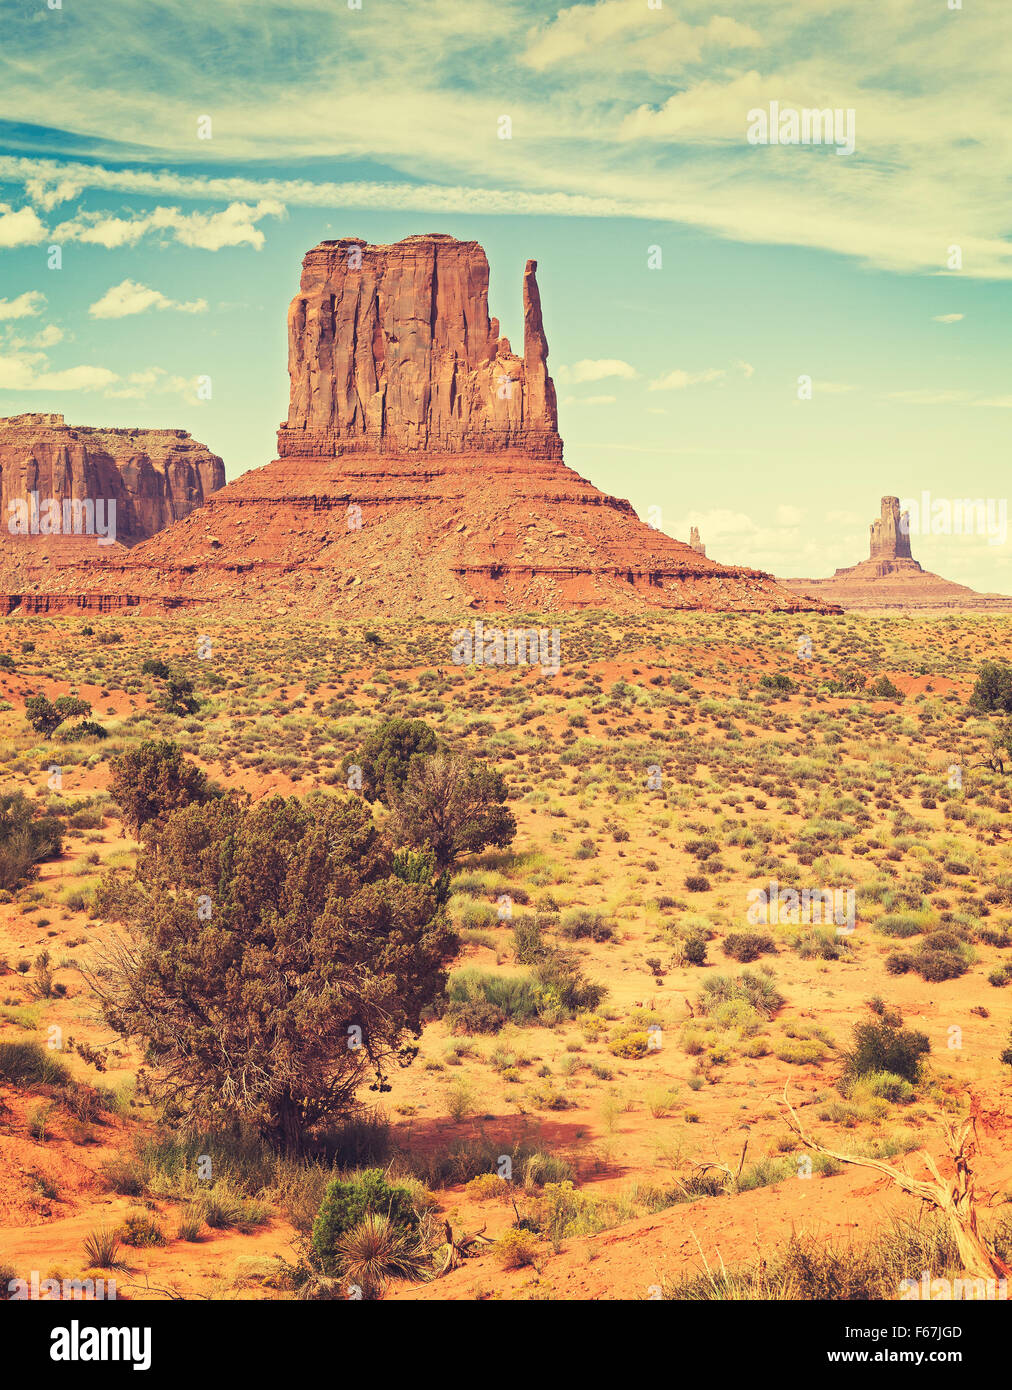 Retro-alte Film Stil Foto von Monument Valley, Utah, USA. Stockbild